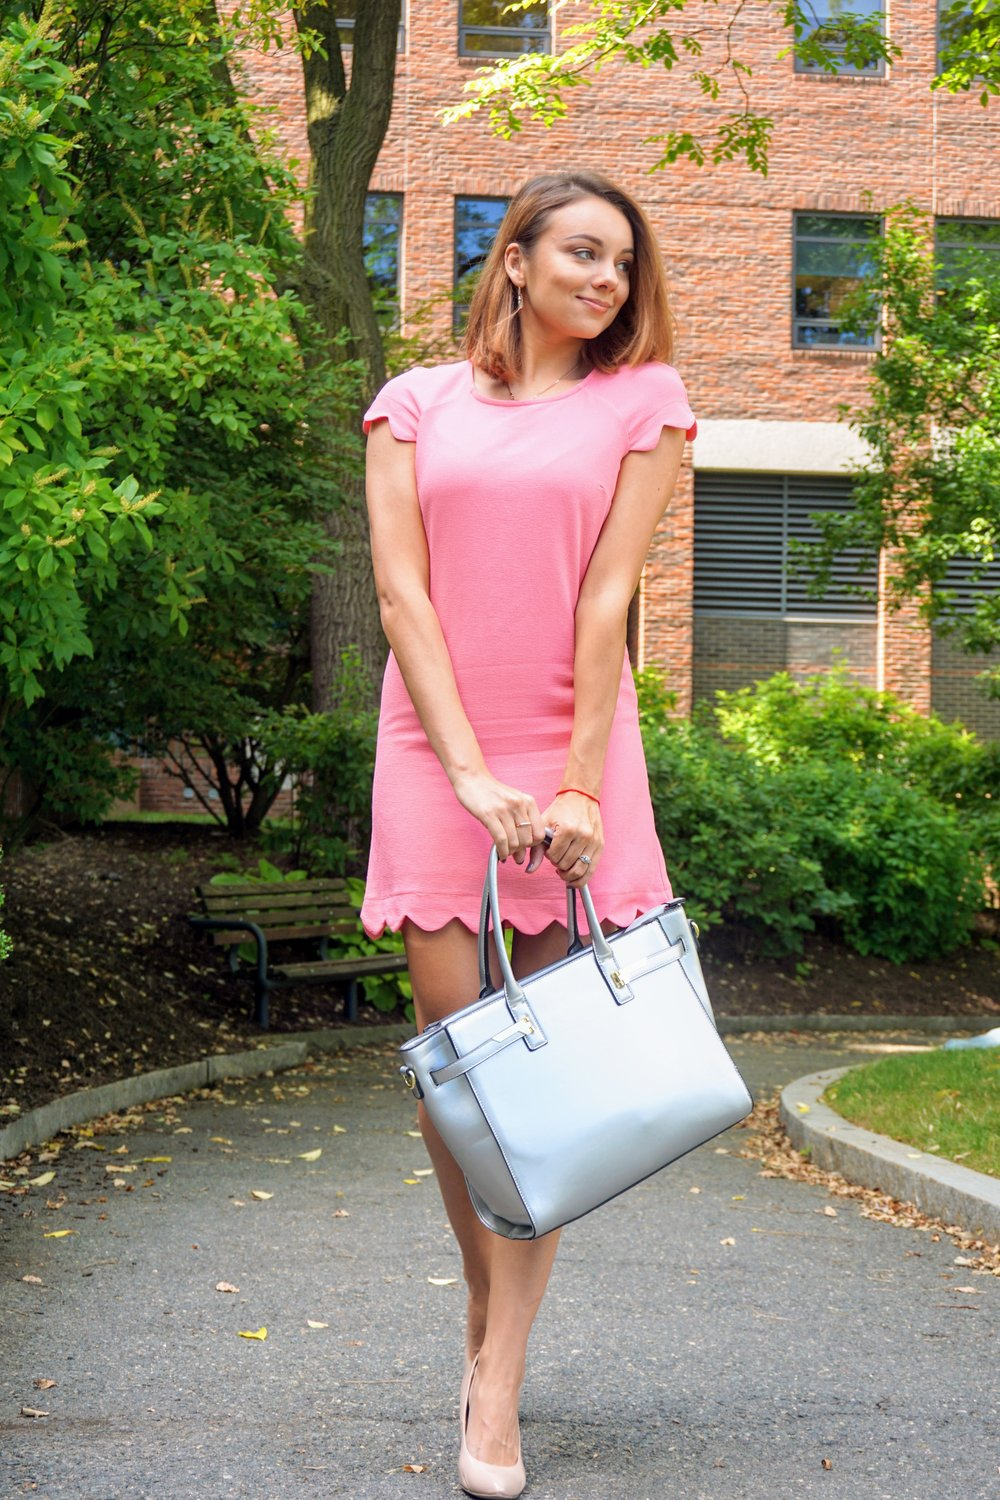 Fashion blogger posing in Boston, wearing a bubblegum pink dress, nude pumps, and a metallic silver bag.